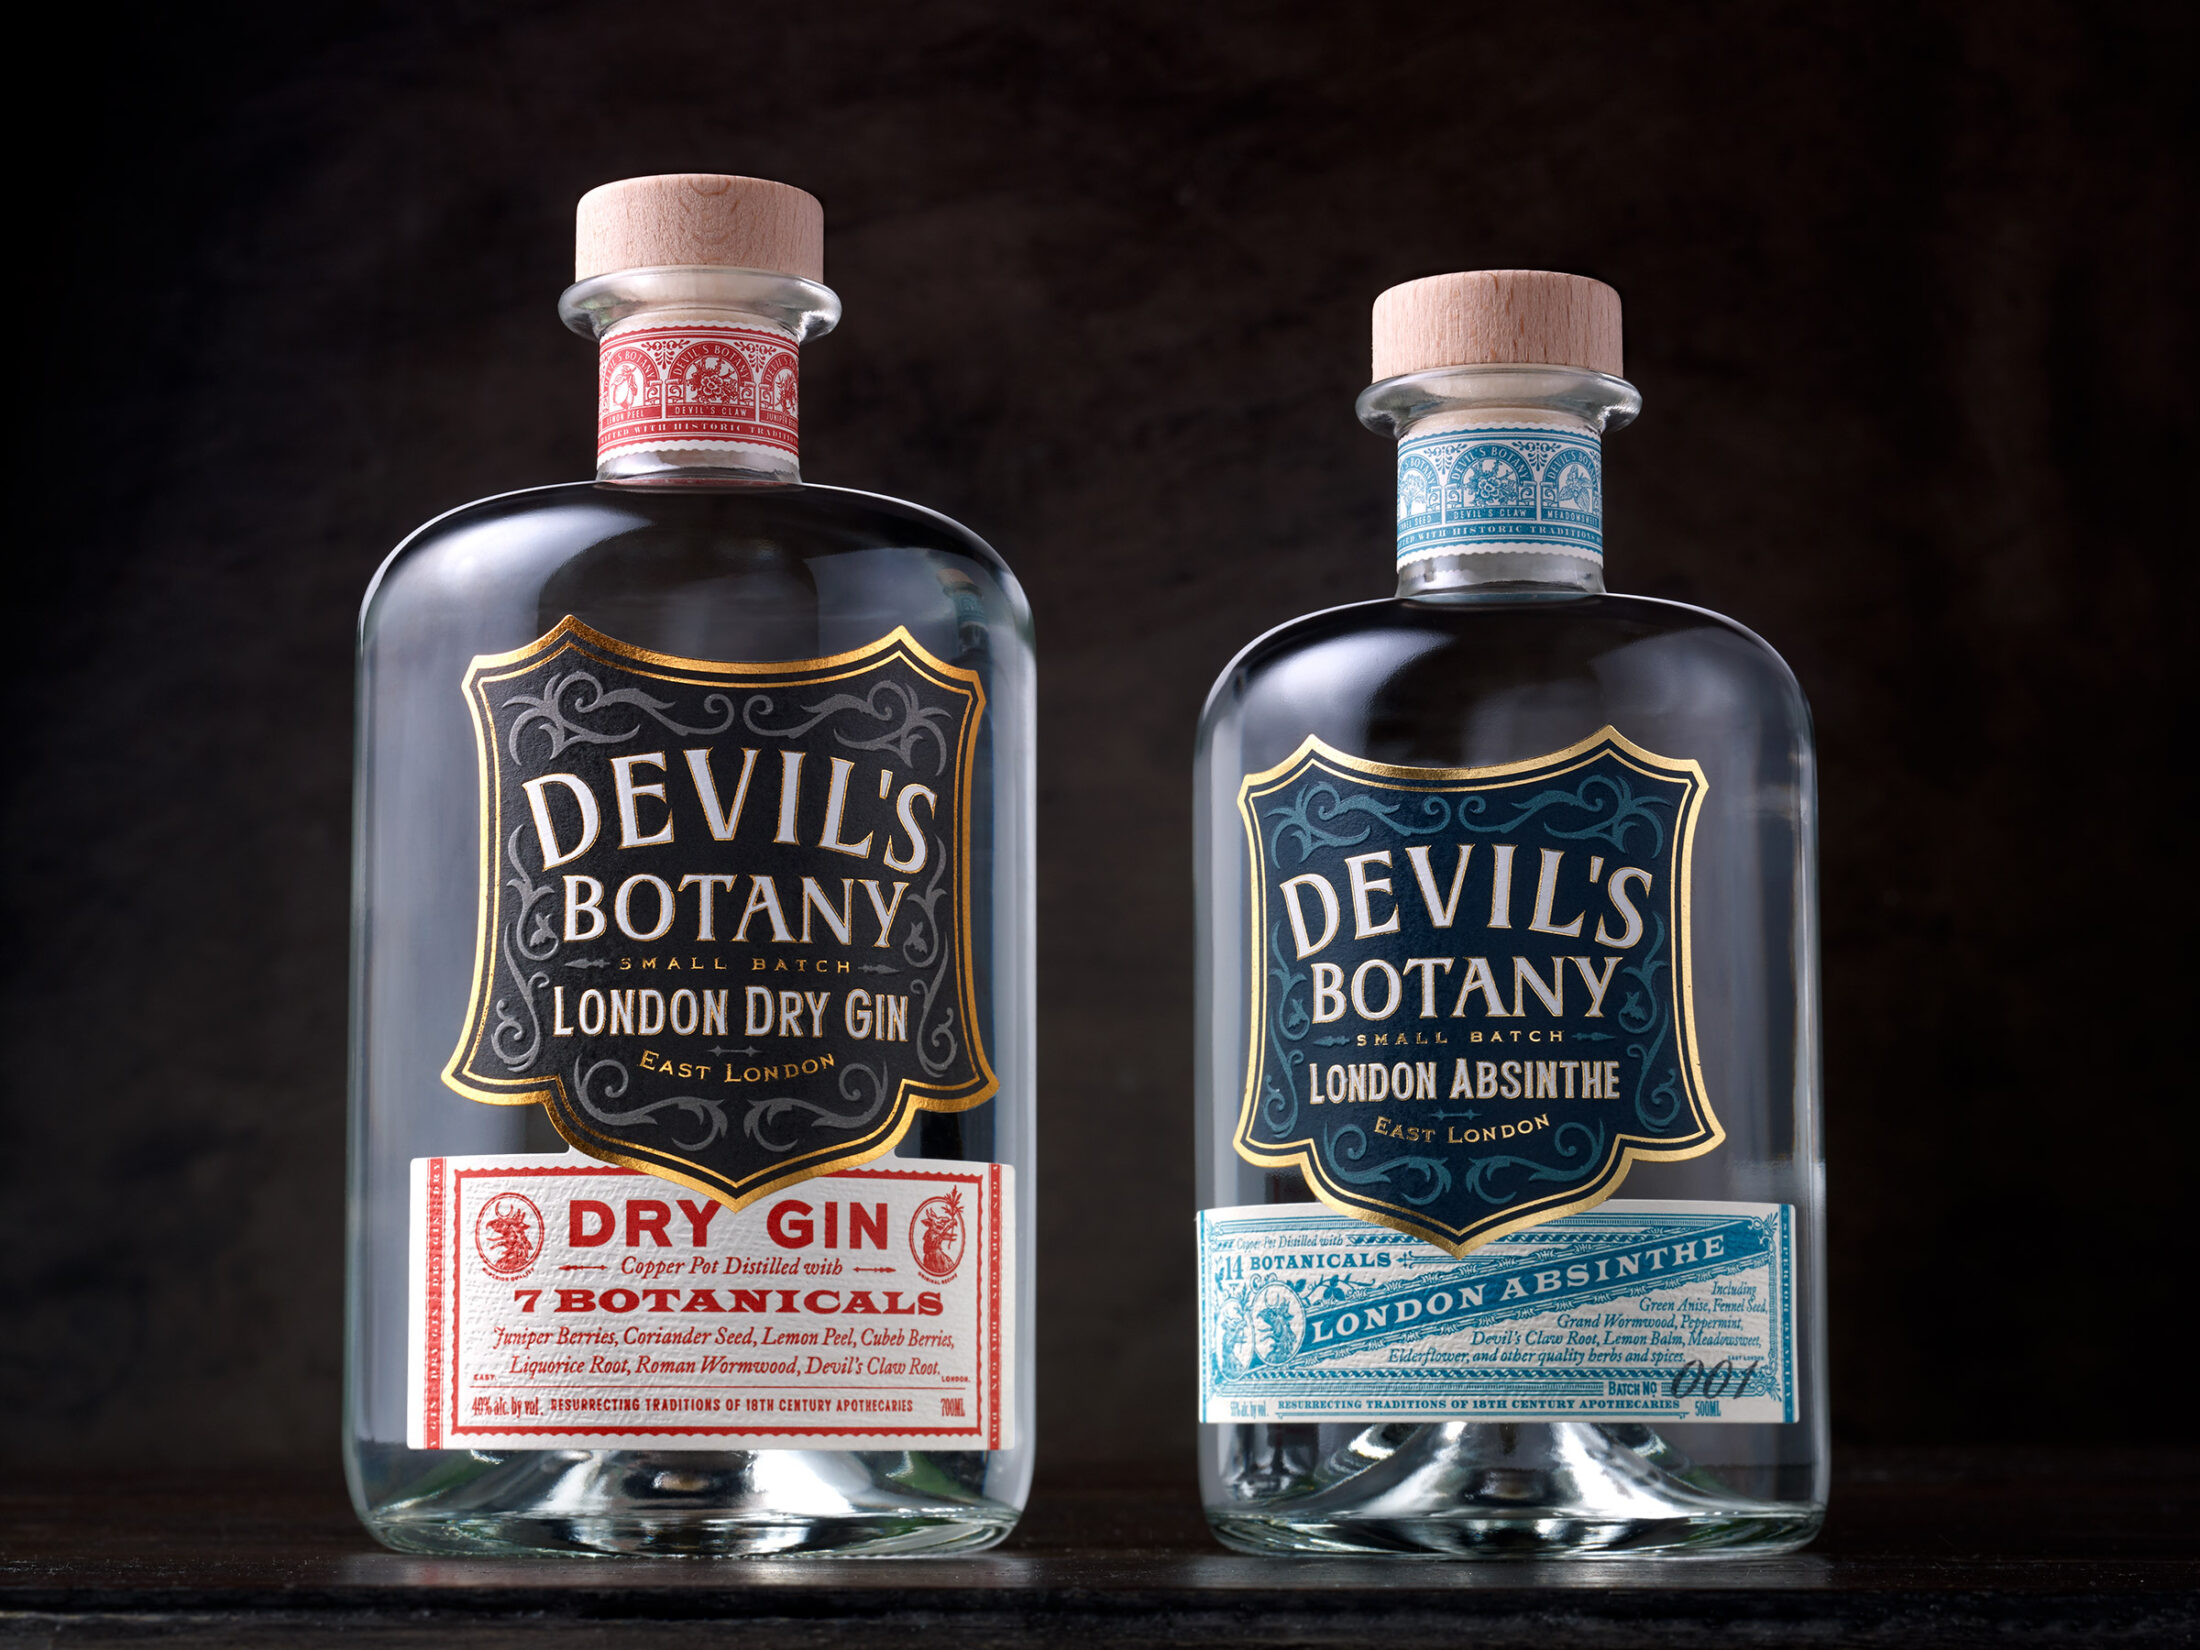 Chad Michael Studio - Devil's Botany Absinthe and Dry Gin